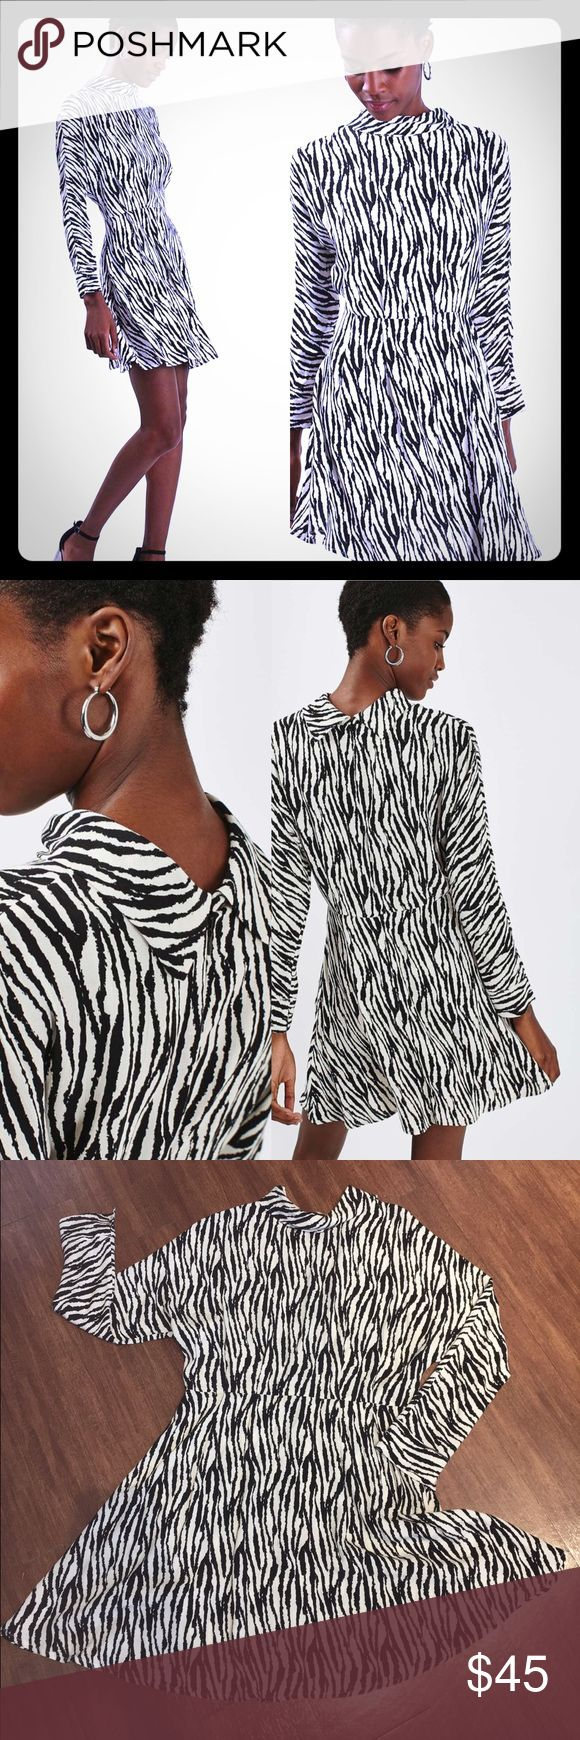 TOPSHOP Roll Neck Zebra Print Dress Sz 6 Opt for bold animal print in this long sleeve dress. Monochrome Zebra design and roll neck style. Wear with block heels for a perfect going out look! Topshop Dresses Mini